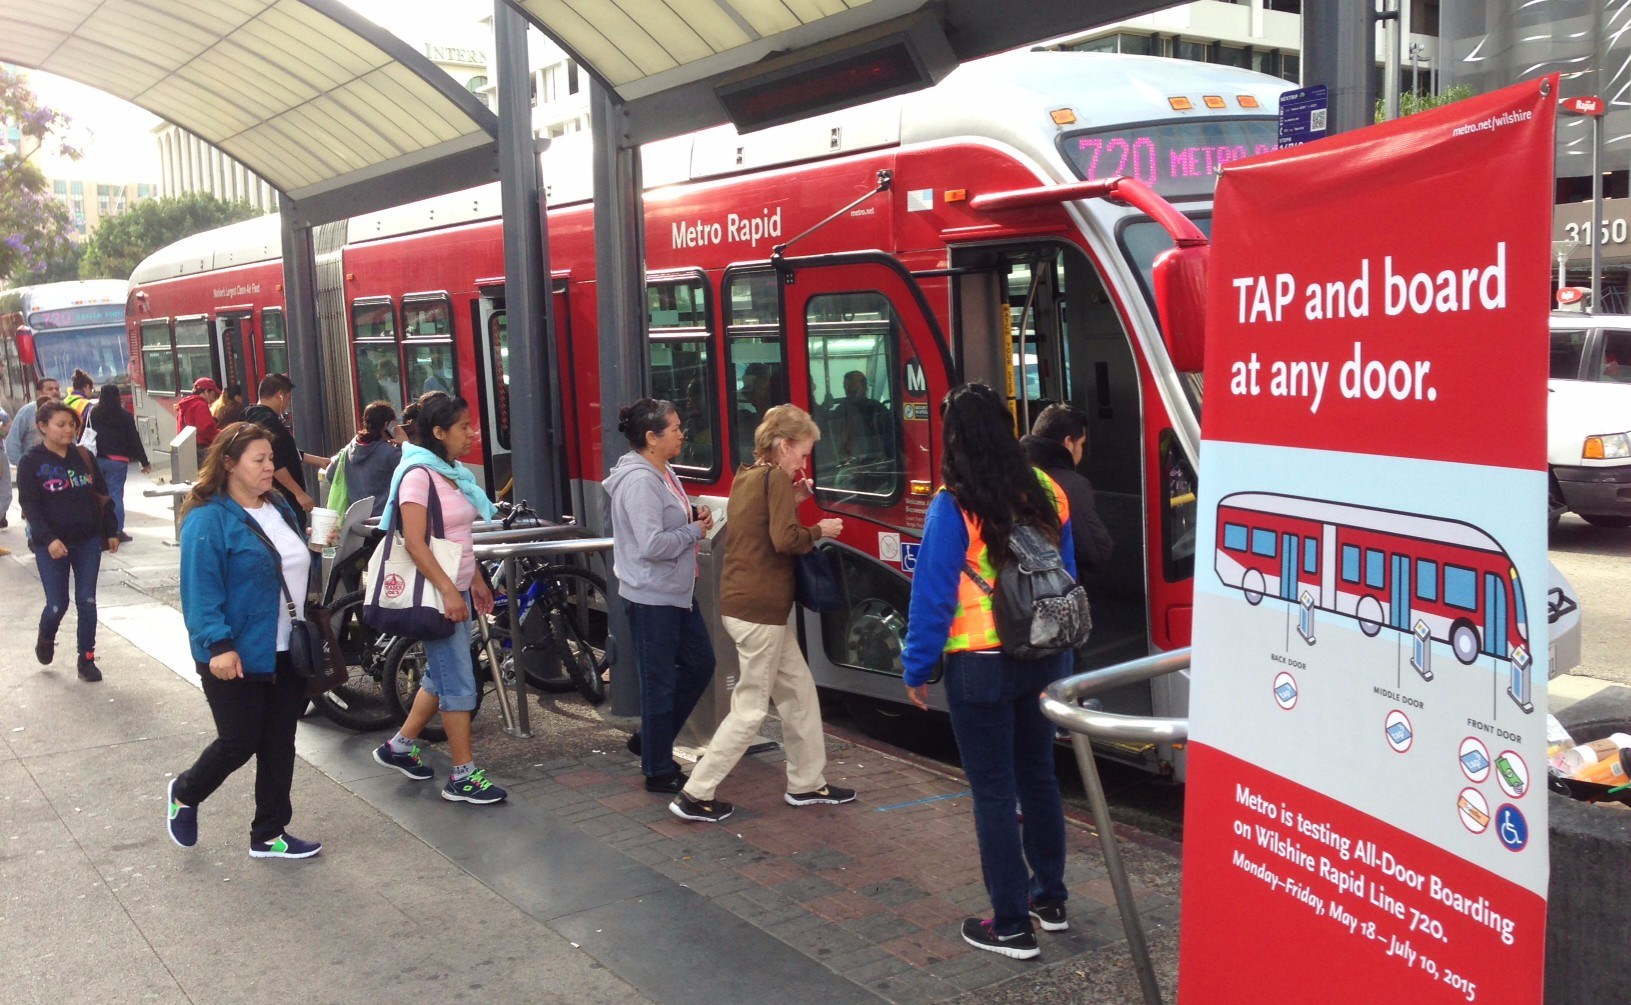 Los Angeles Metro Rapid BRT